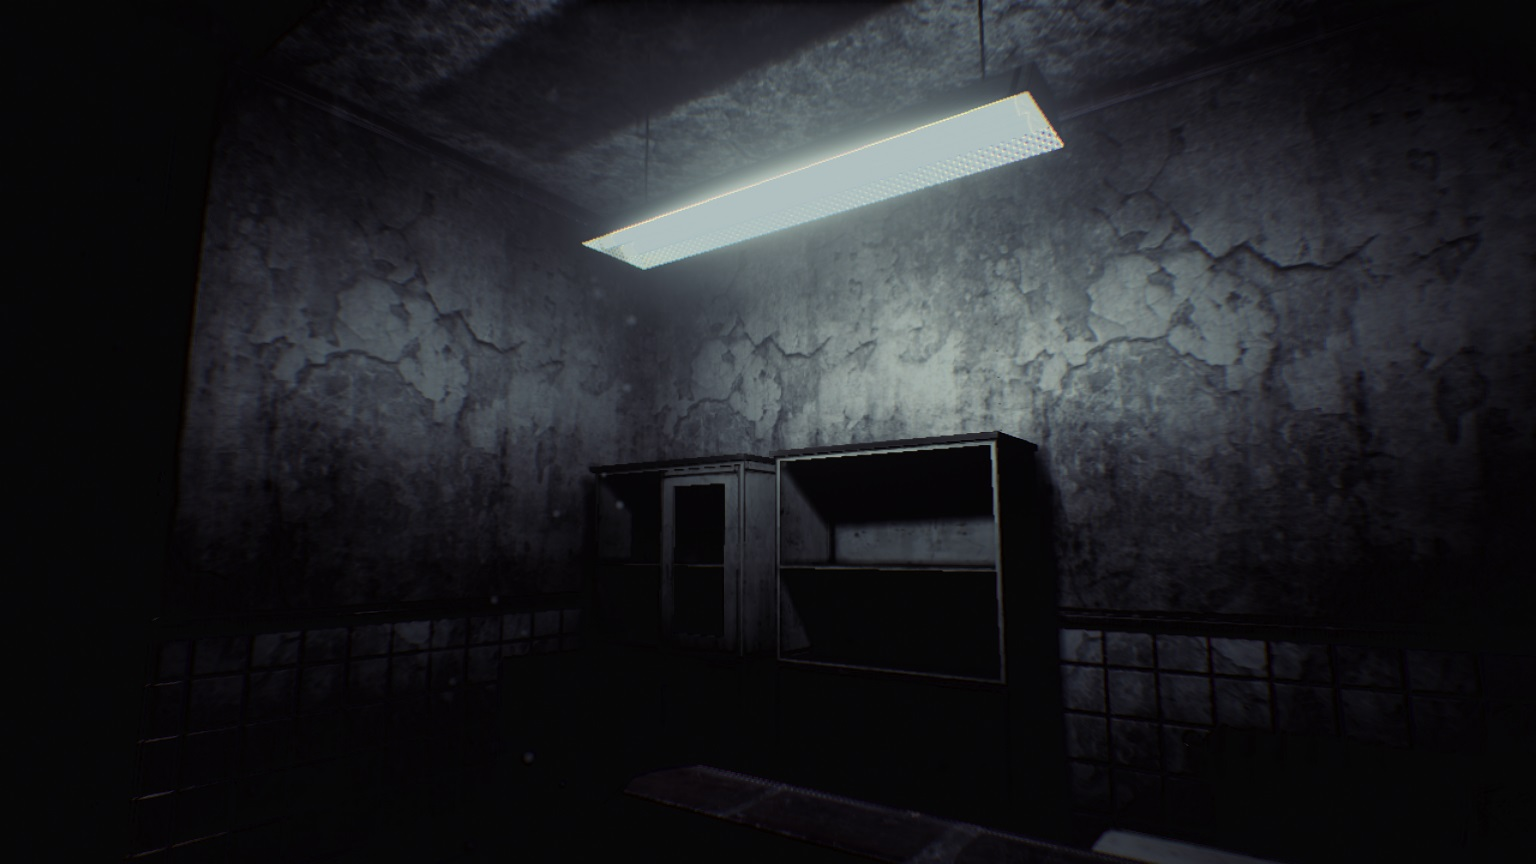 Image 1 13th floor simulator mod db for 13th floor superstition